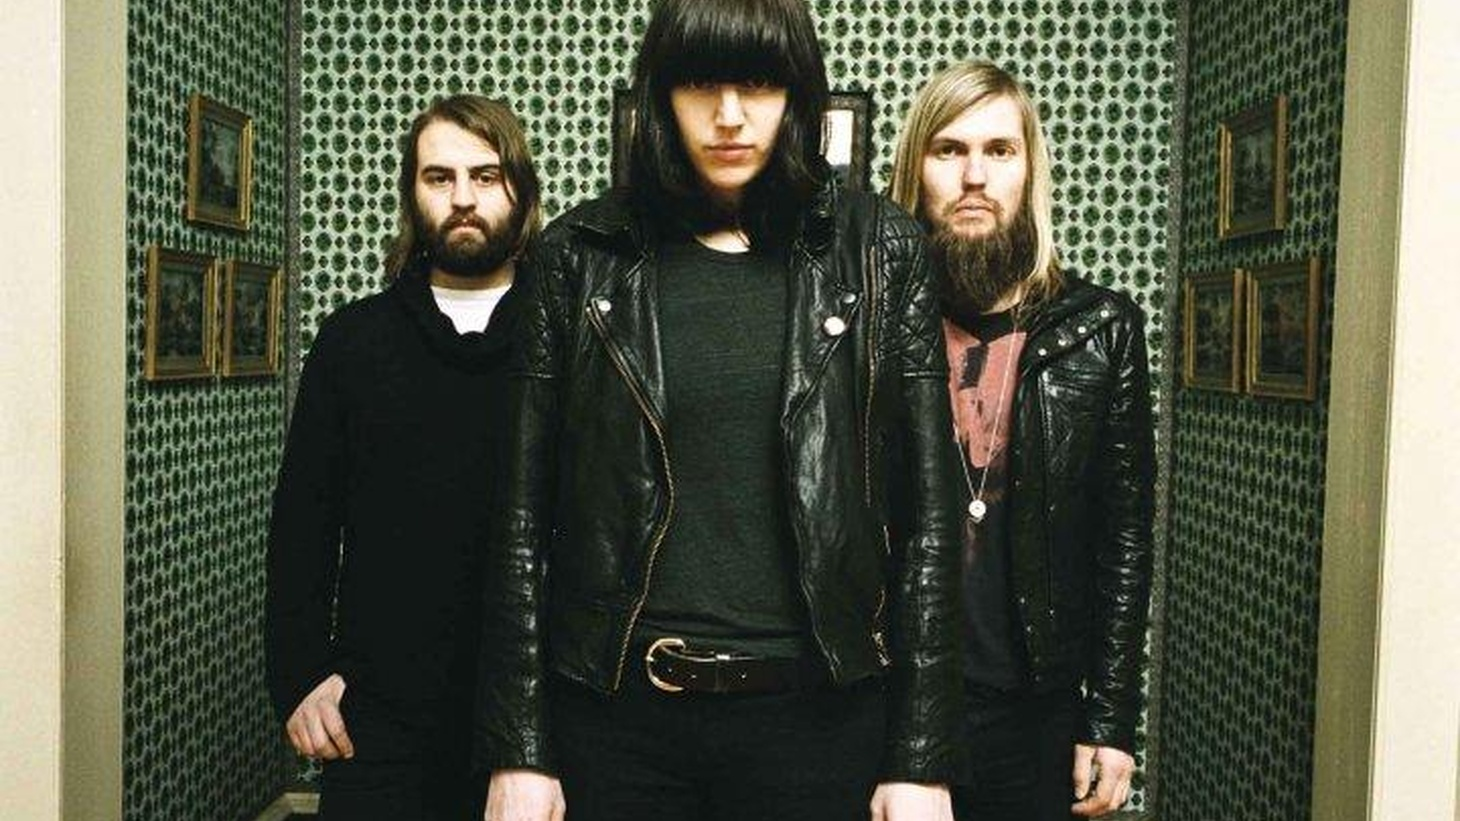 British trio Band of Skulls play pure rock 'n' roll. We hear it when they join us for a set on Morning Becomes Eclectic.